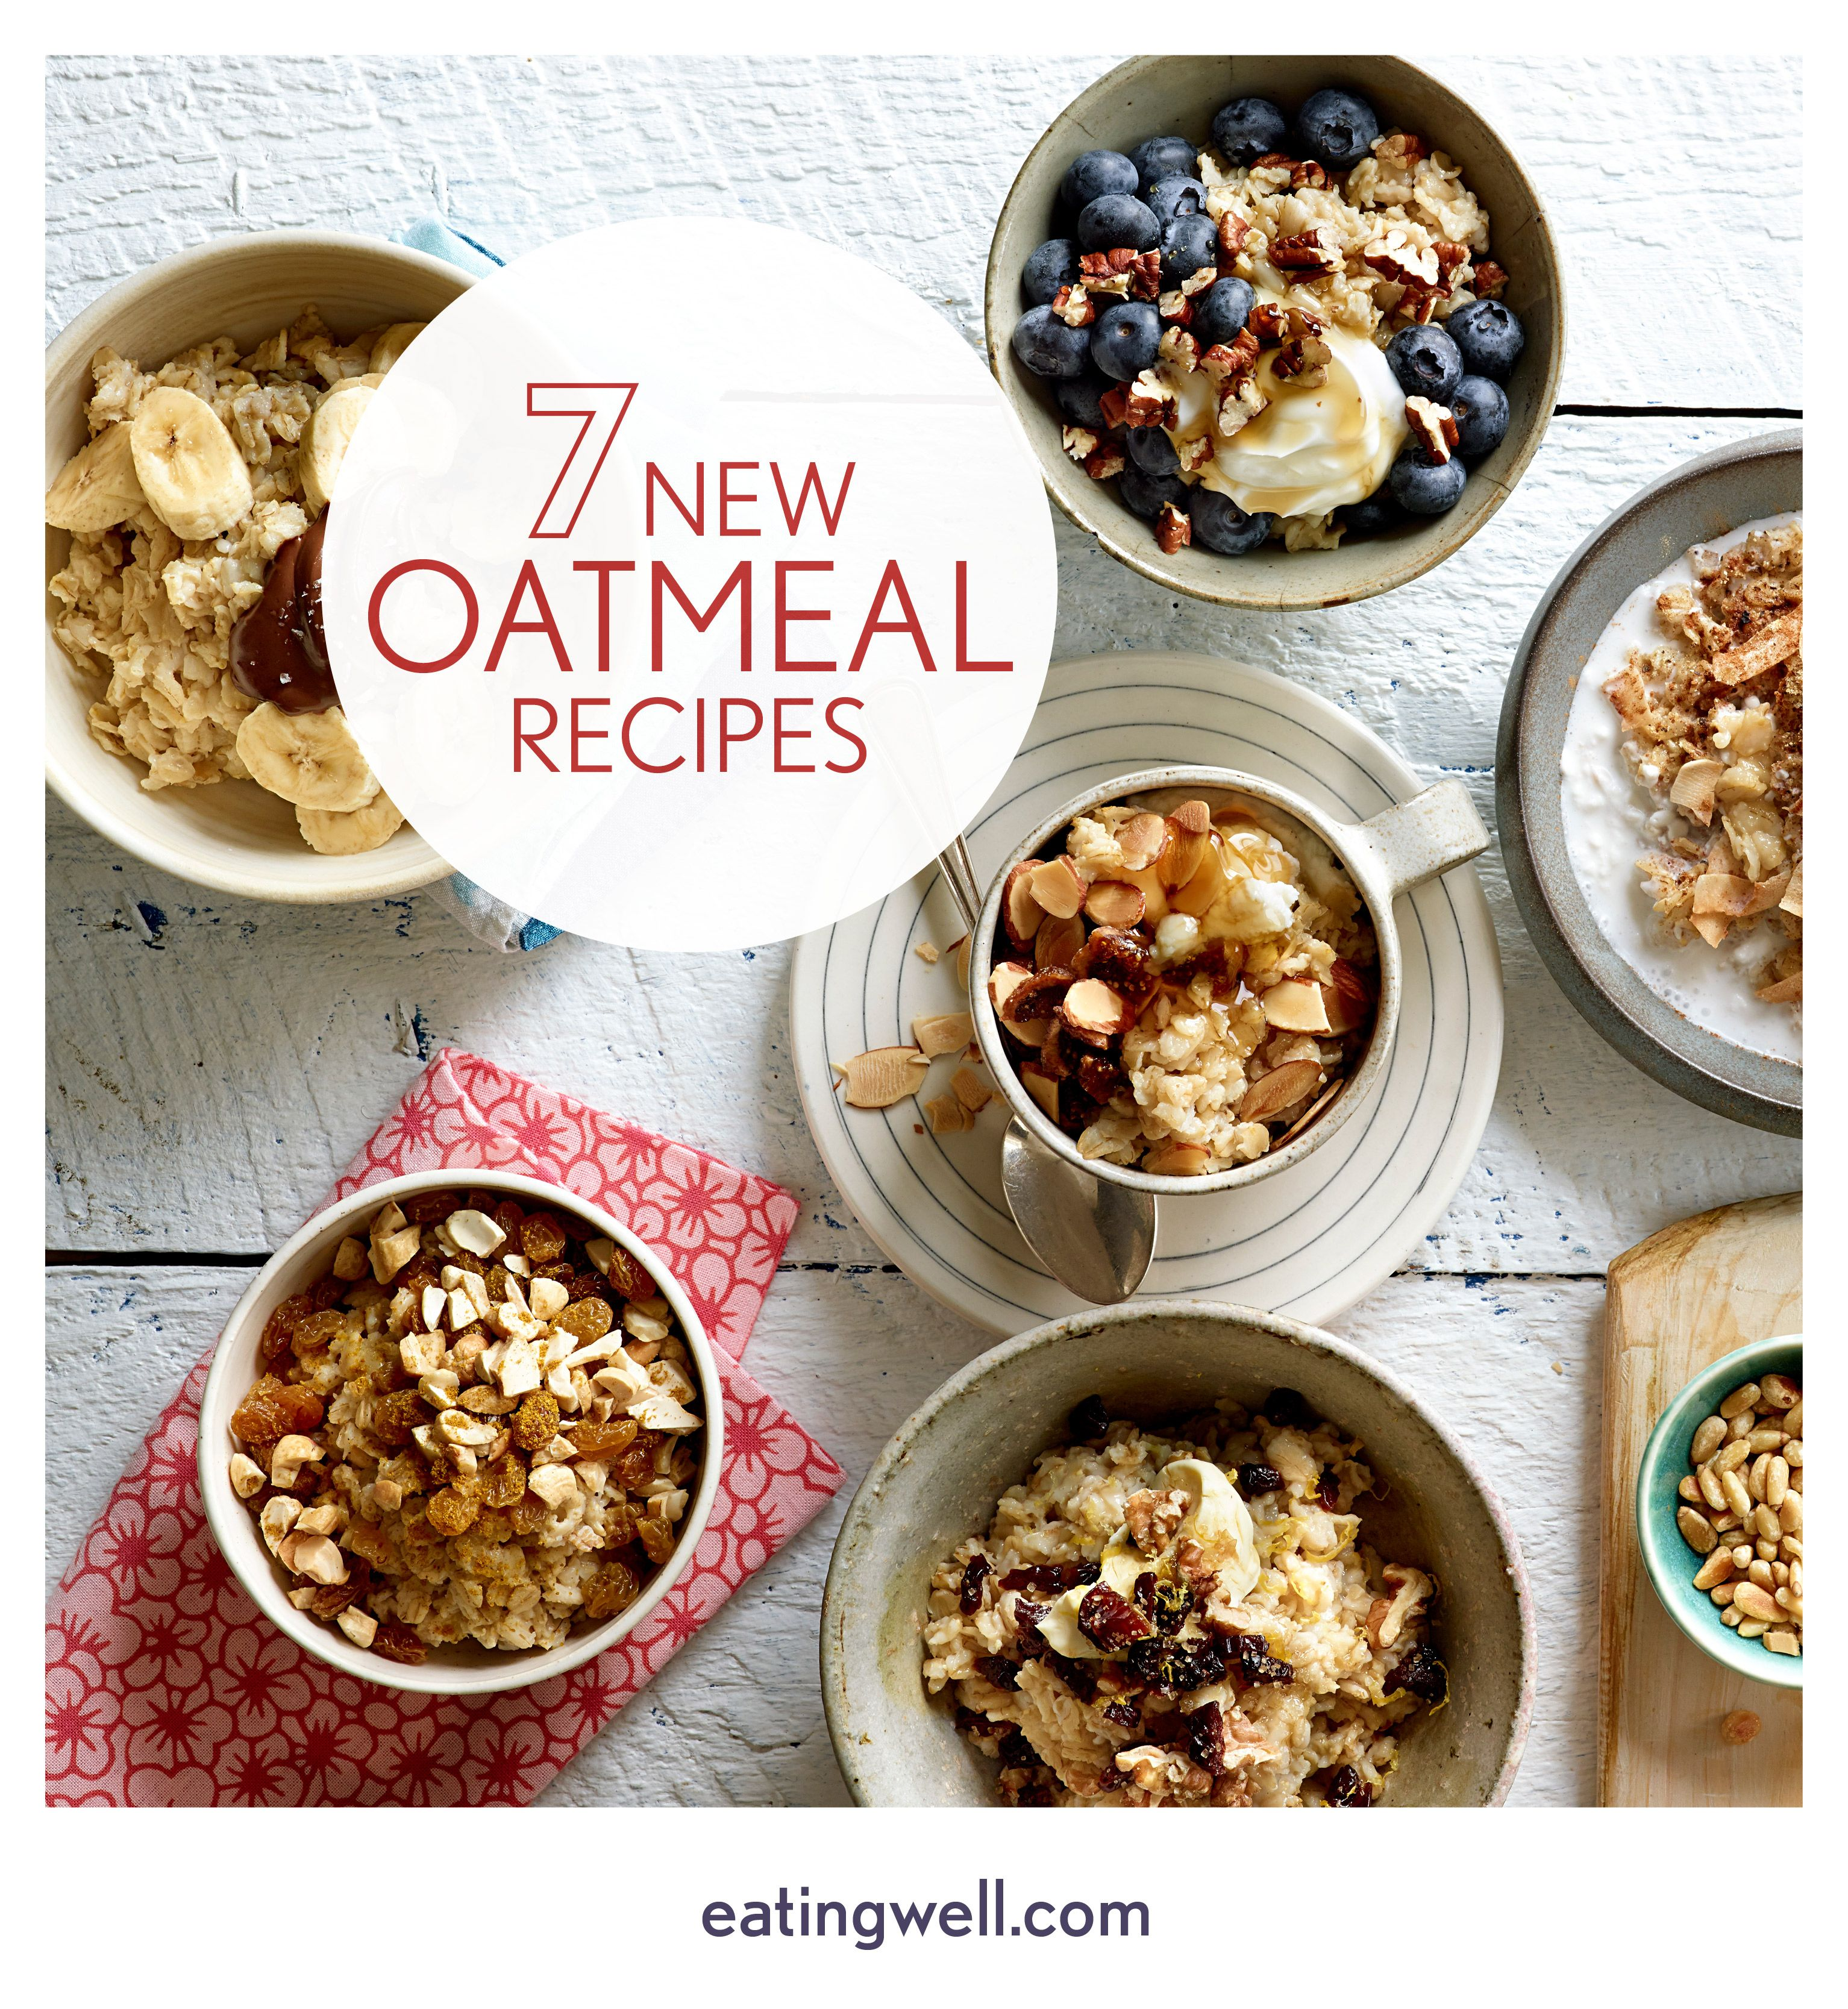 Oatmeal is one of the healthiest breakfasts of all time. But it doesn't have to be drab and boring. We have flavorful recipes to mix it up every day of the week.